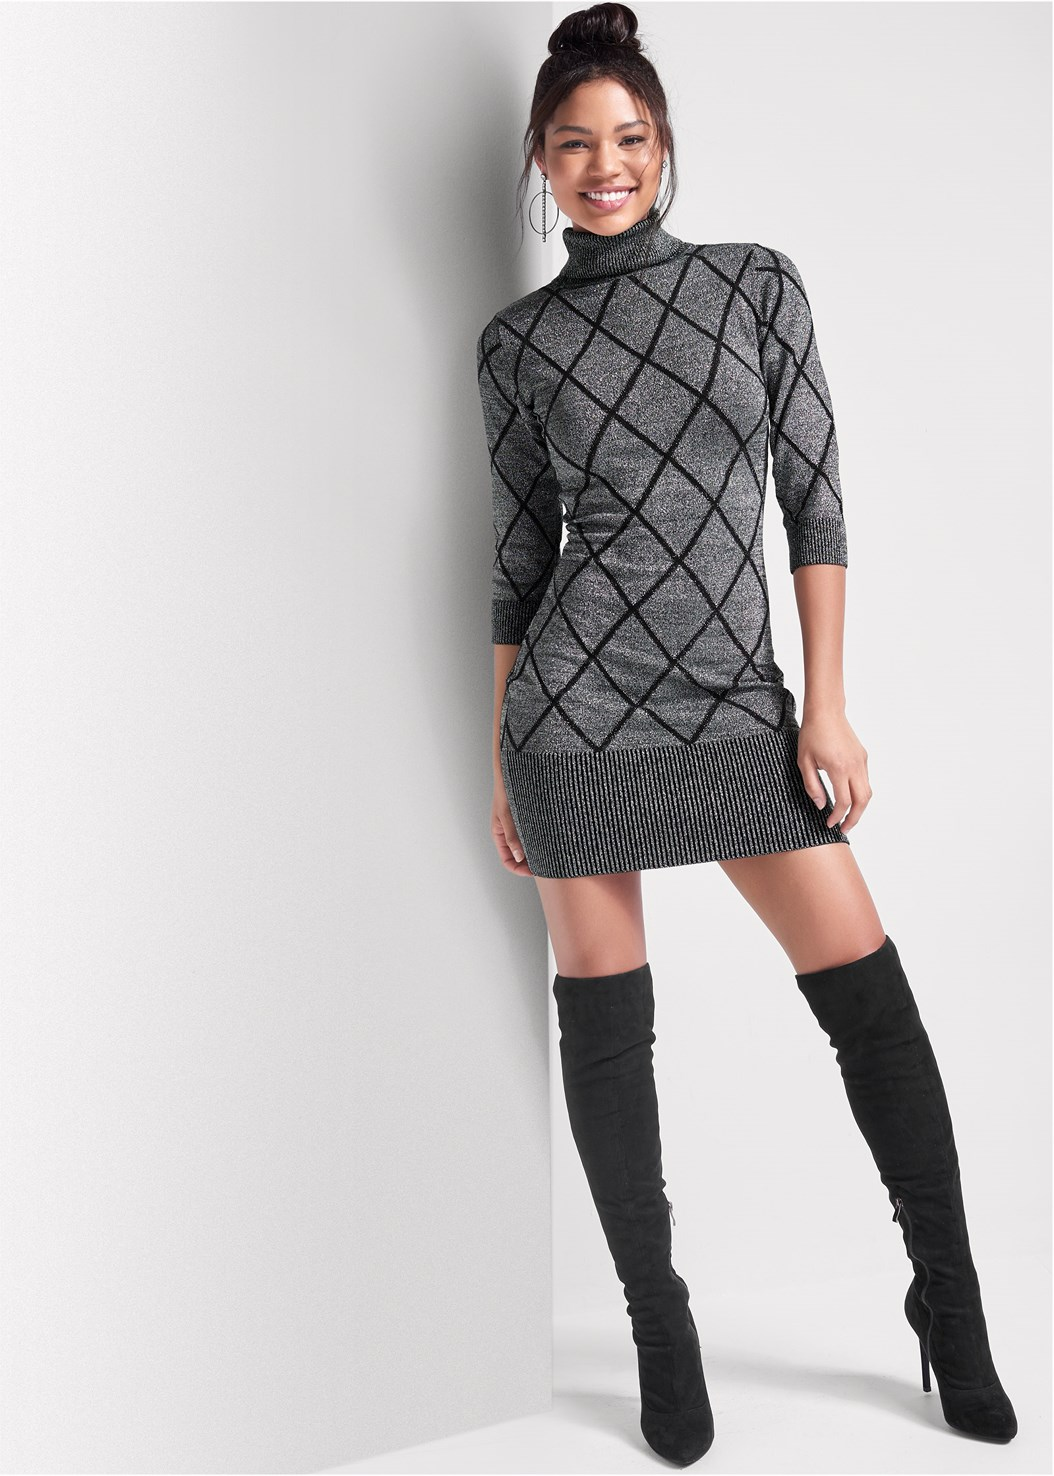 Turtleneck Sweater Dress,Cut Out Detail Boots,Block Heel Boots,Heel Embellished Boot,Tie Back Boots